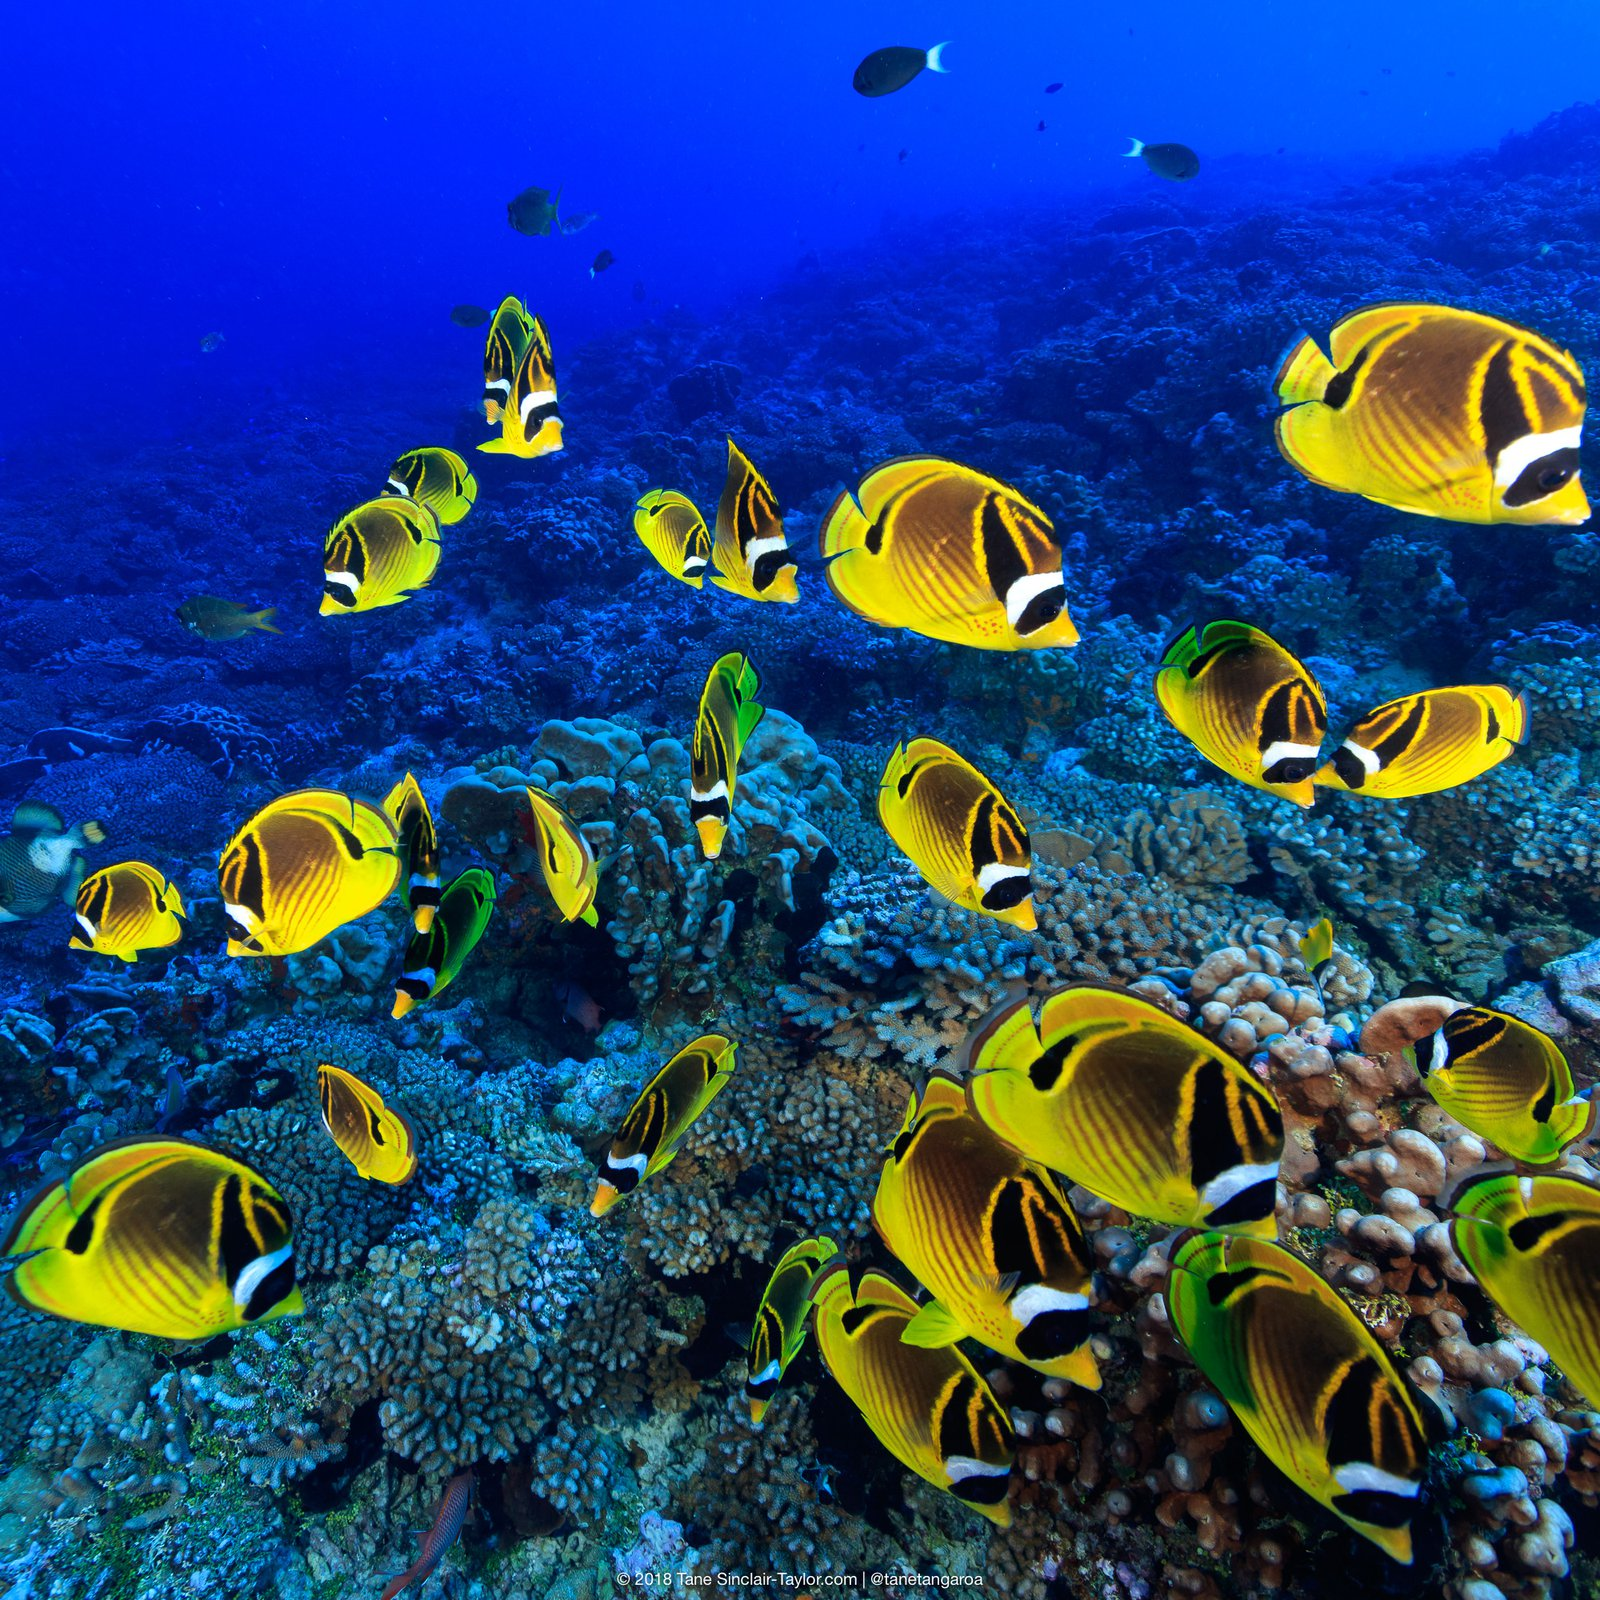 A small school of raccoon butterflyfish (Chaetodon lunula)